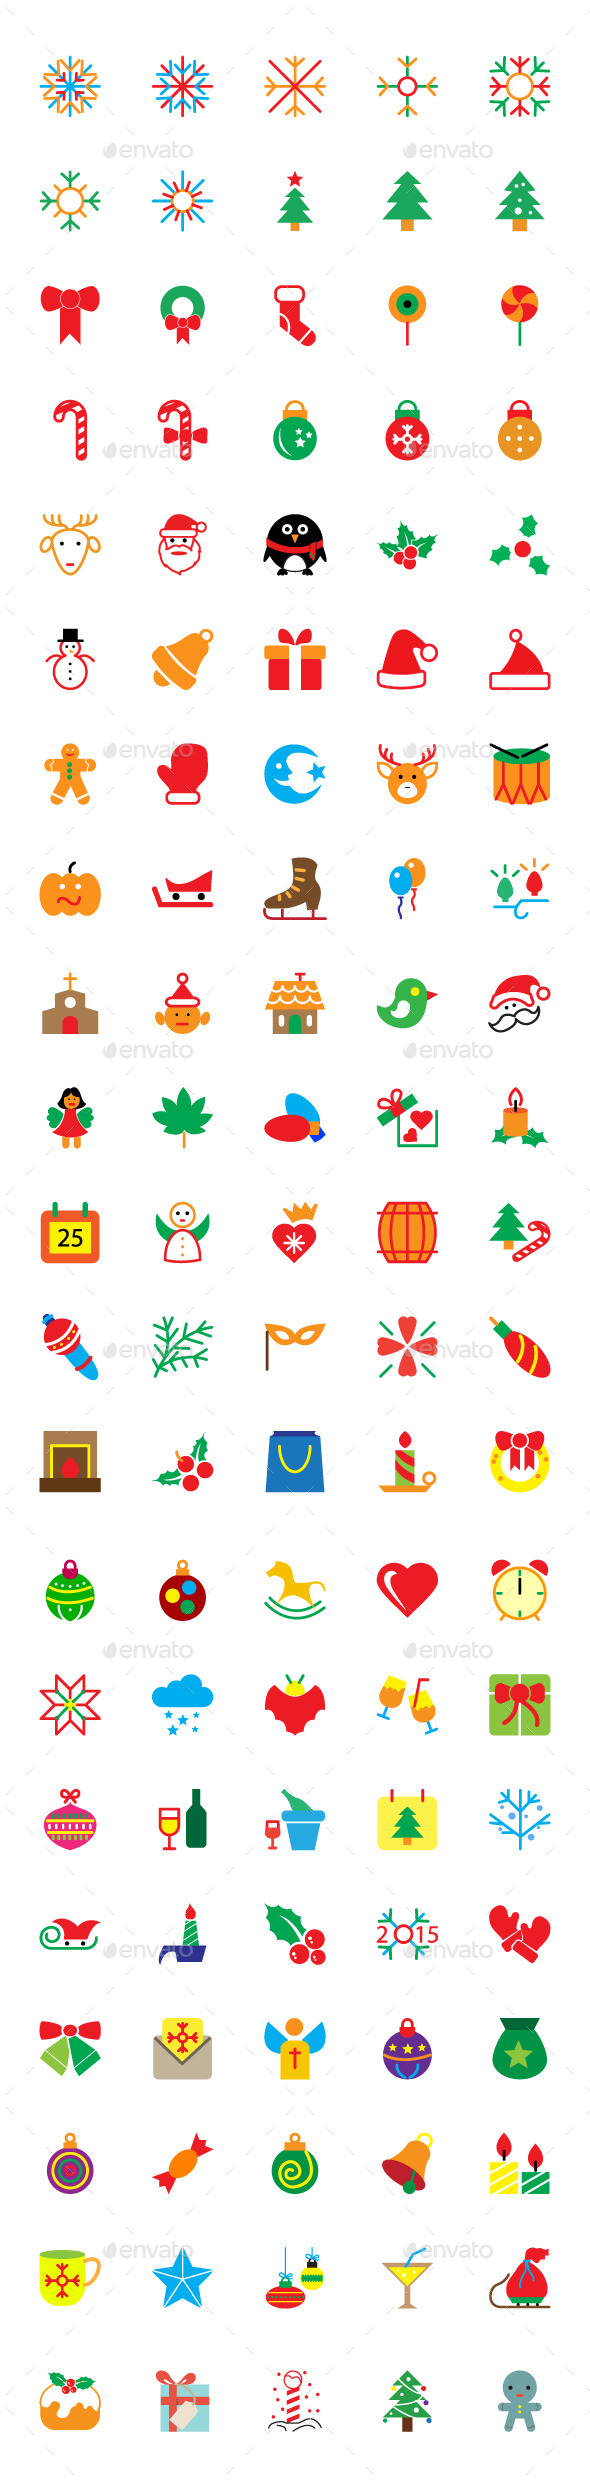 100+ Colored Merry Christmas Vector Icons - Seasonal Icons